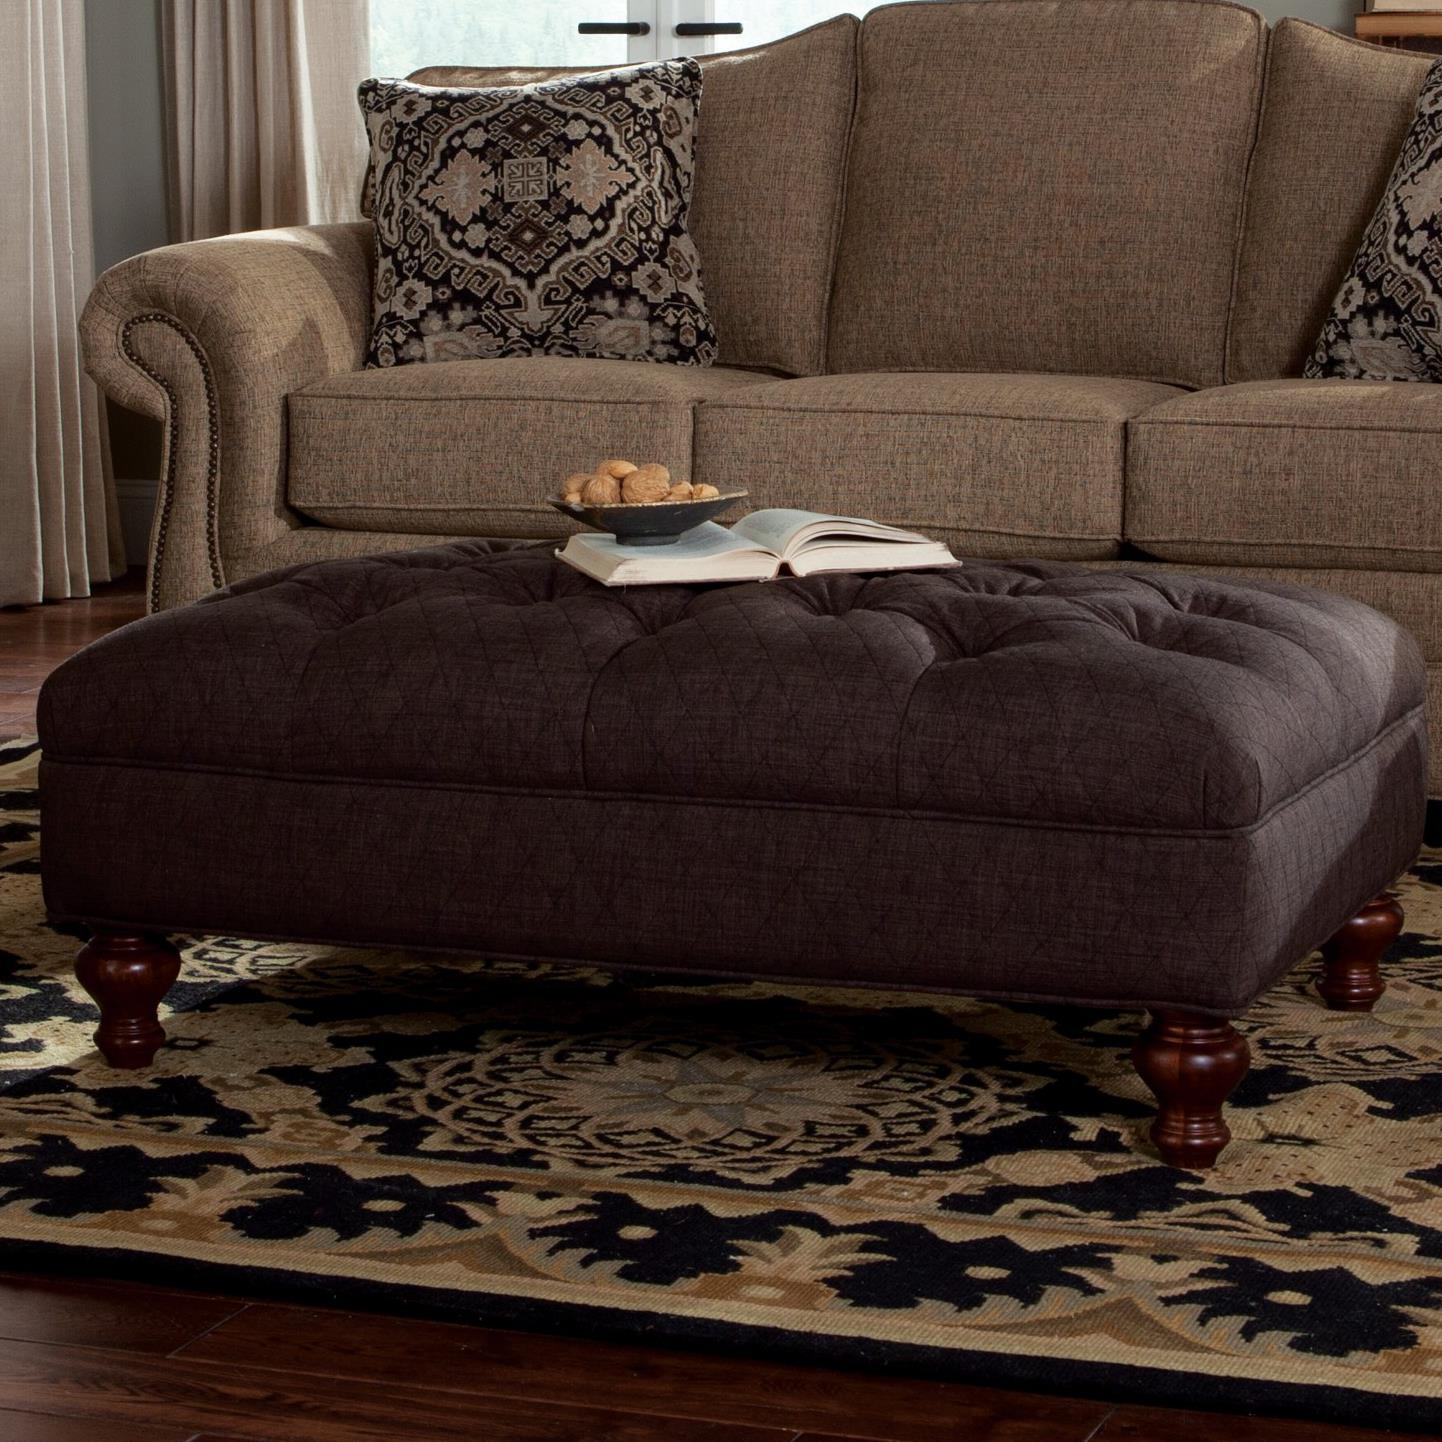 Superior Extra Large Tufted Ottoman With Bun Wood Feet